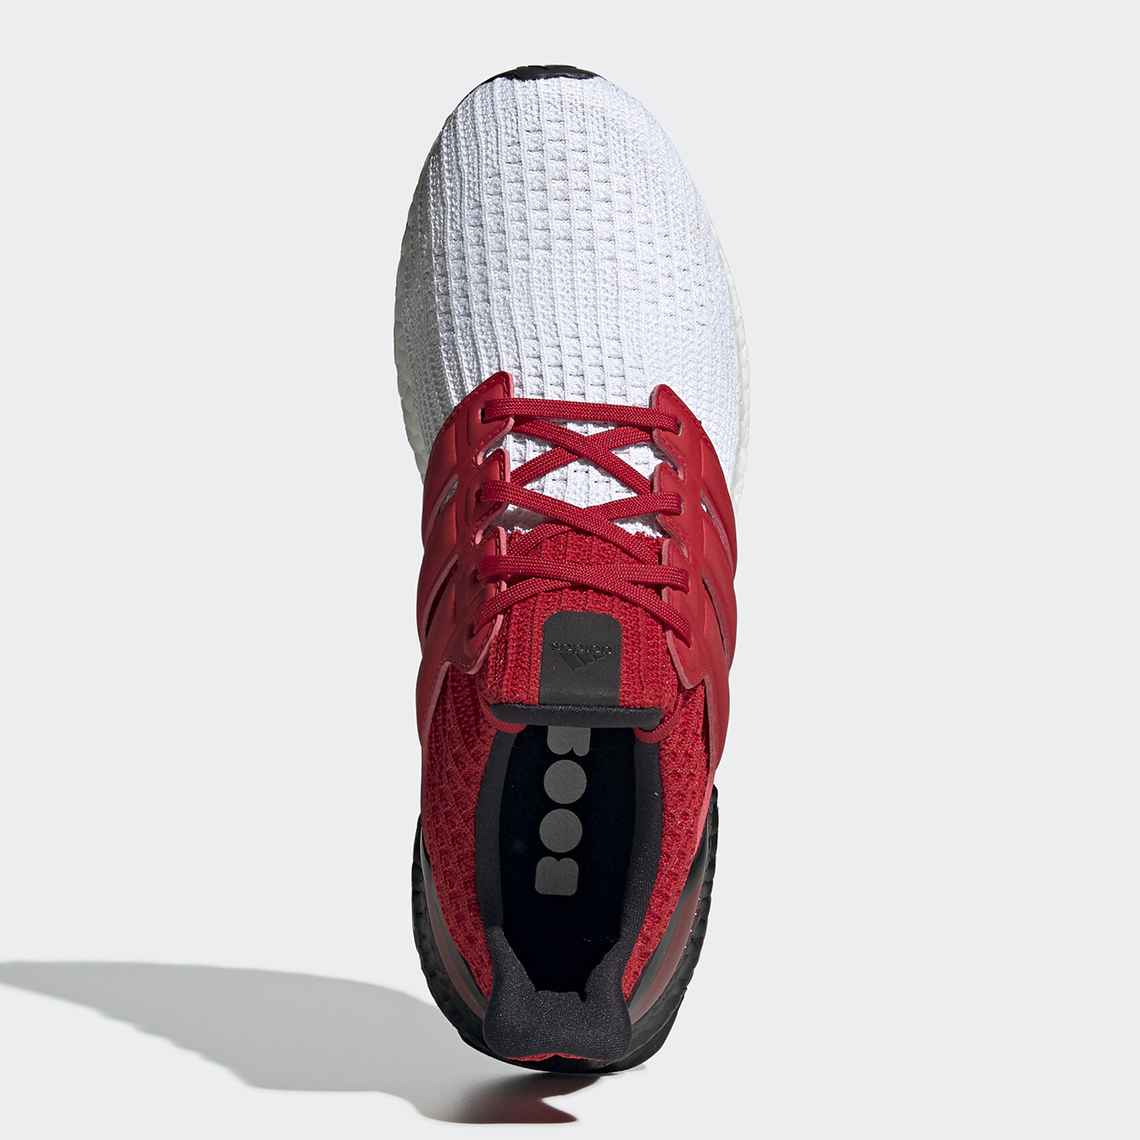 new style 23179 6a091 adidas Ultra Boost 4.0 White Red Black G28999 Release Info ...